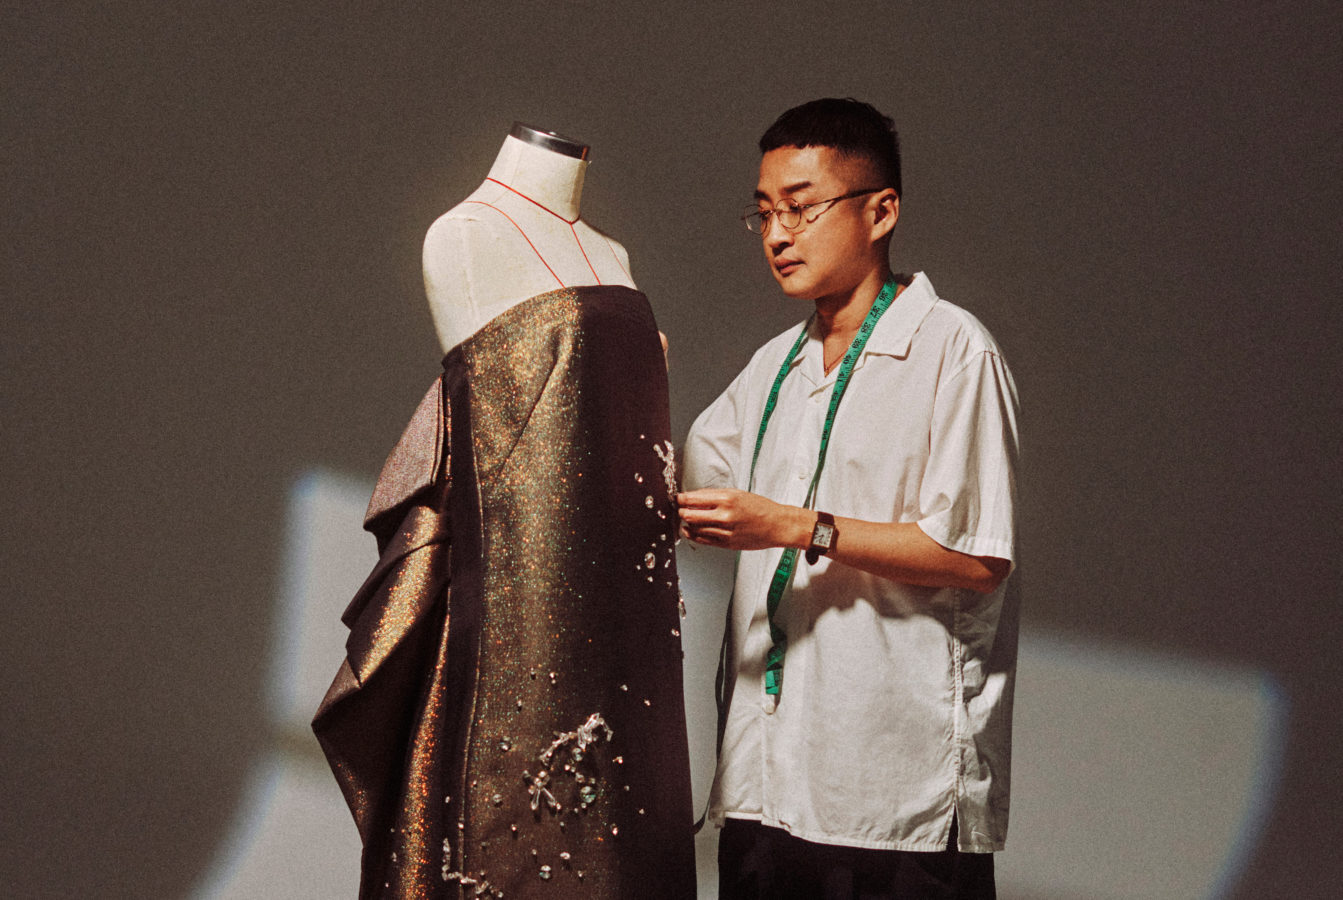 Malaysian couturier Khoon Hooi details how every inch of his designs is 'Made with Care'